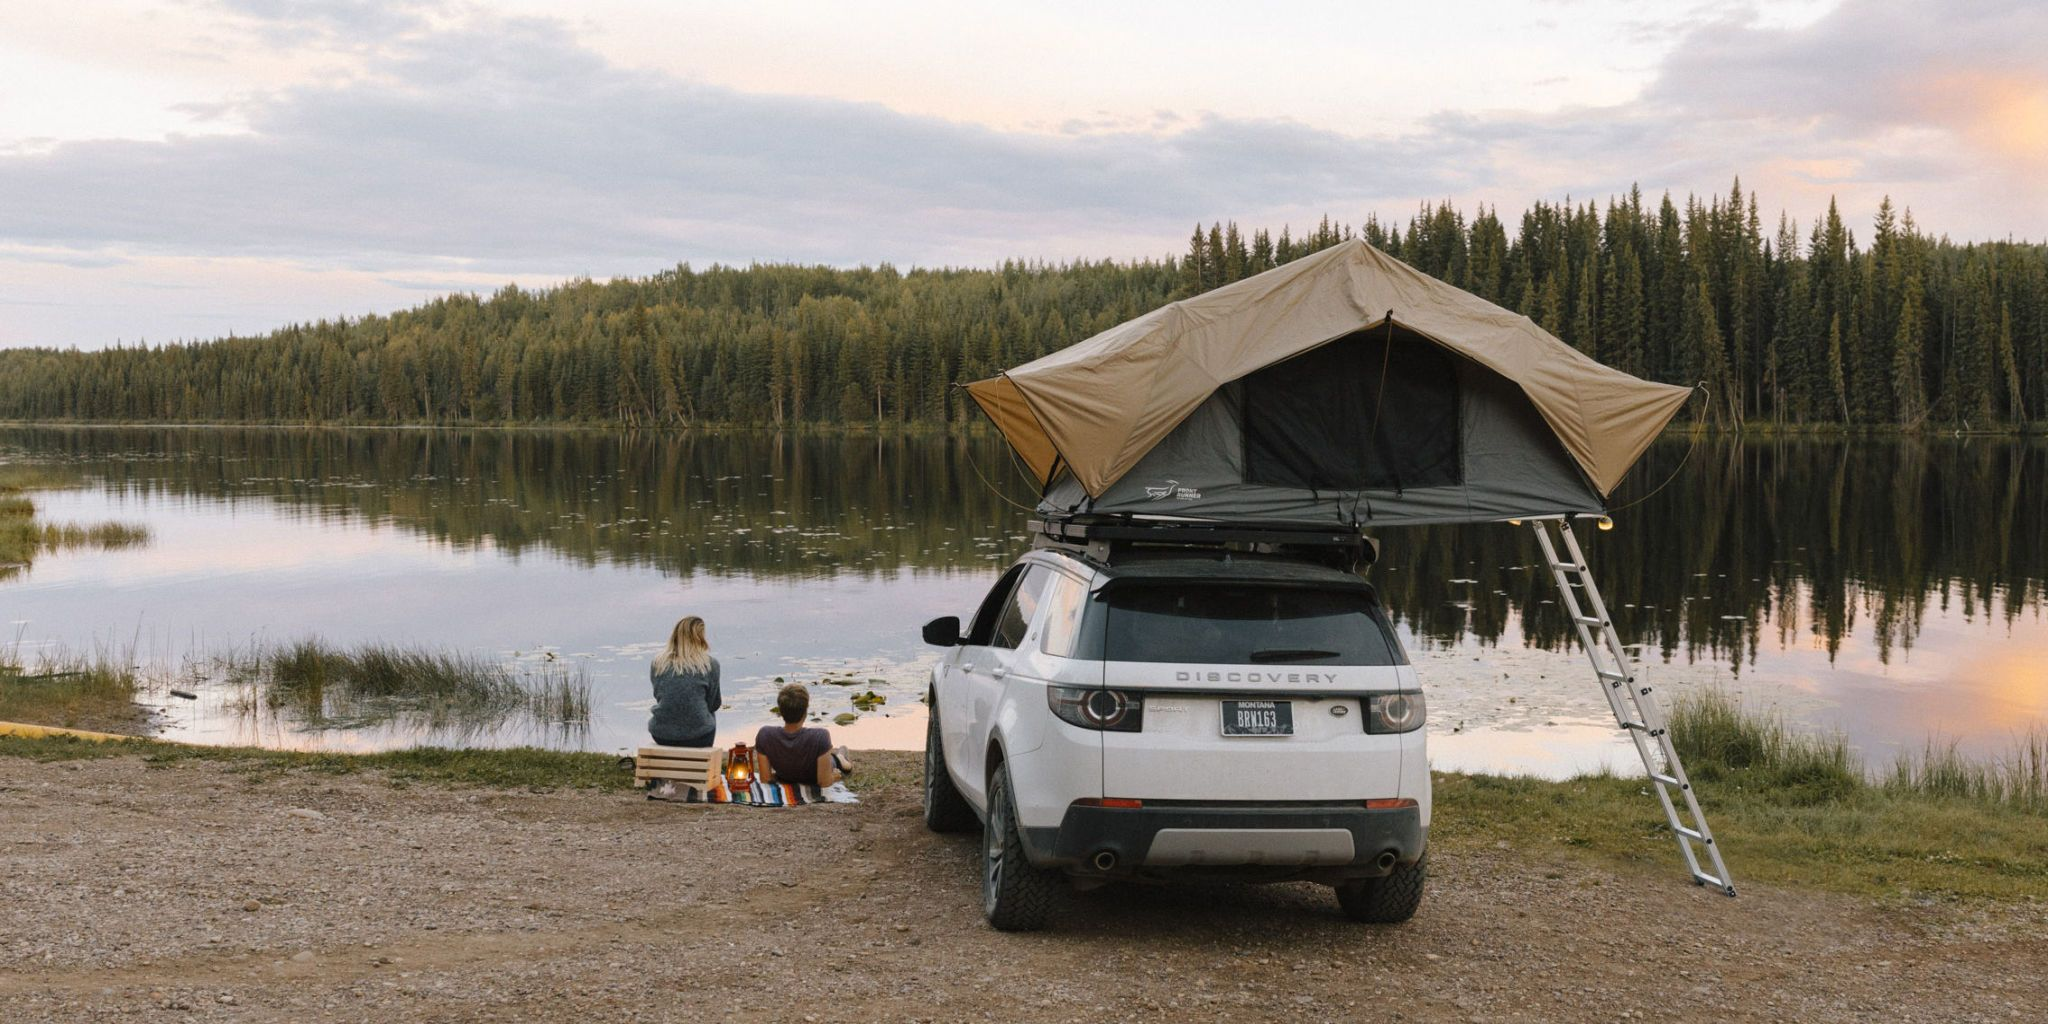 8 Terrific Roof Top Tents That Make Camping a Breeze